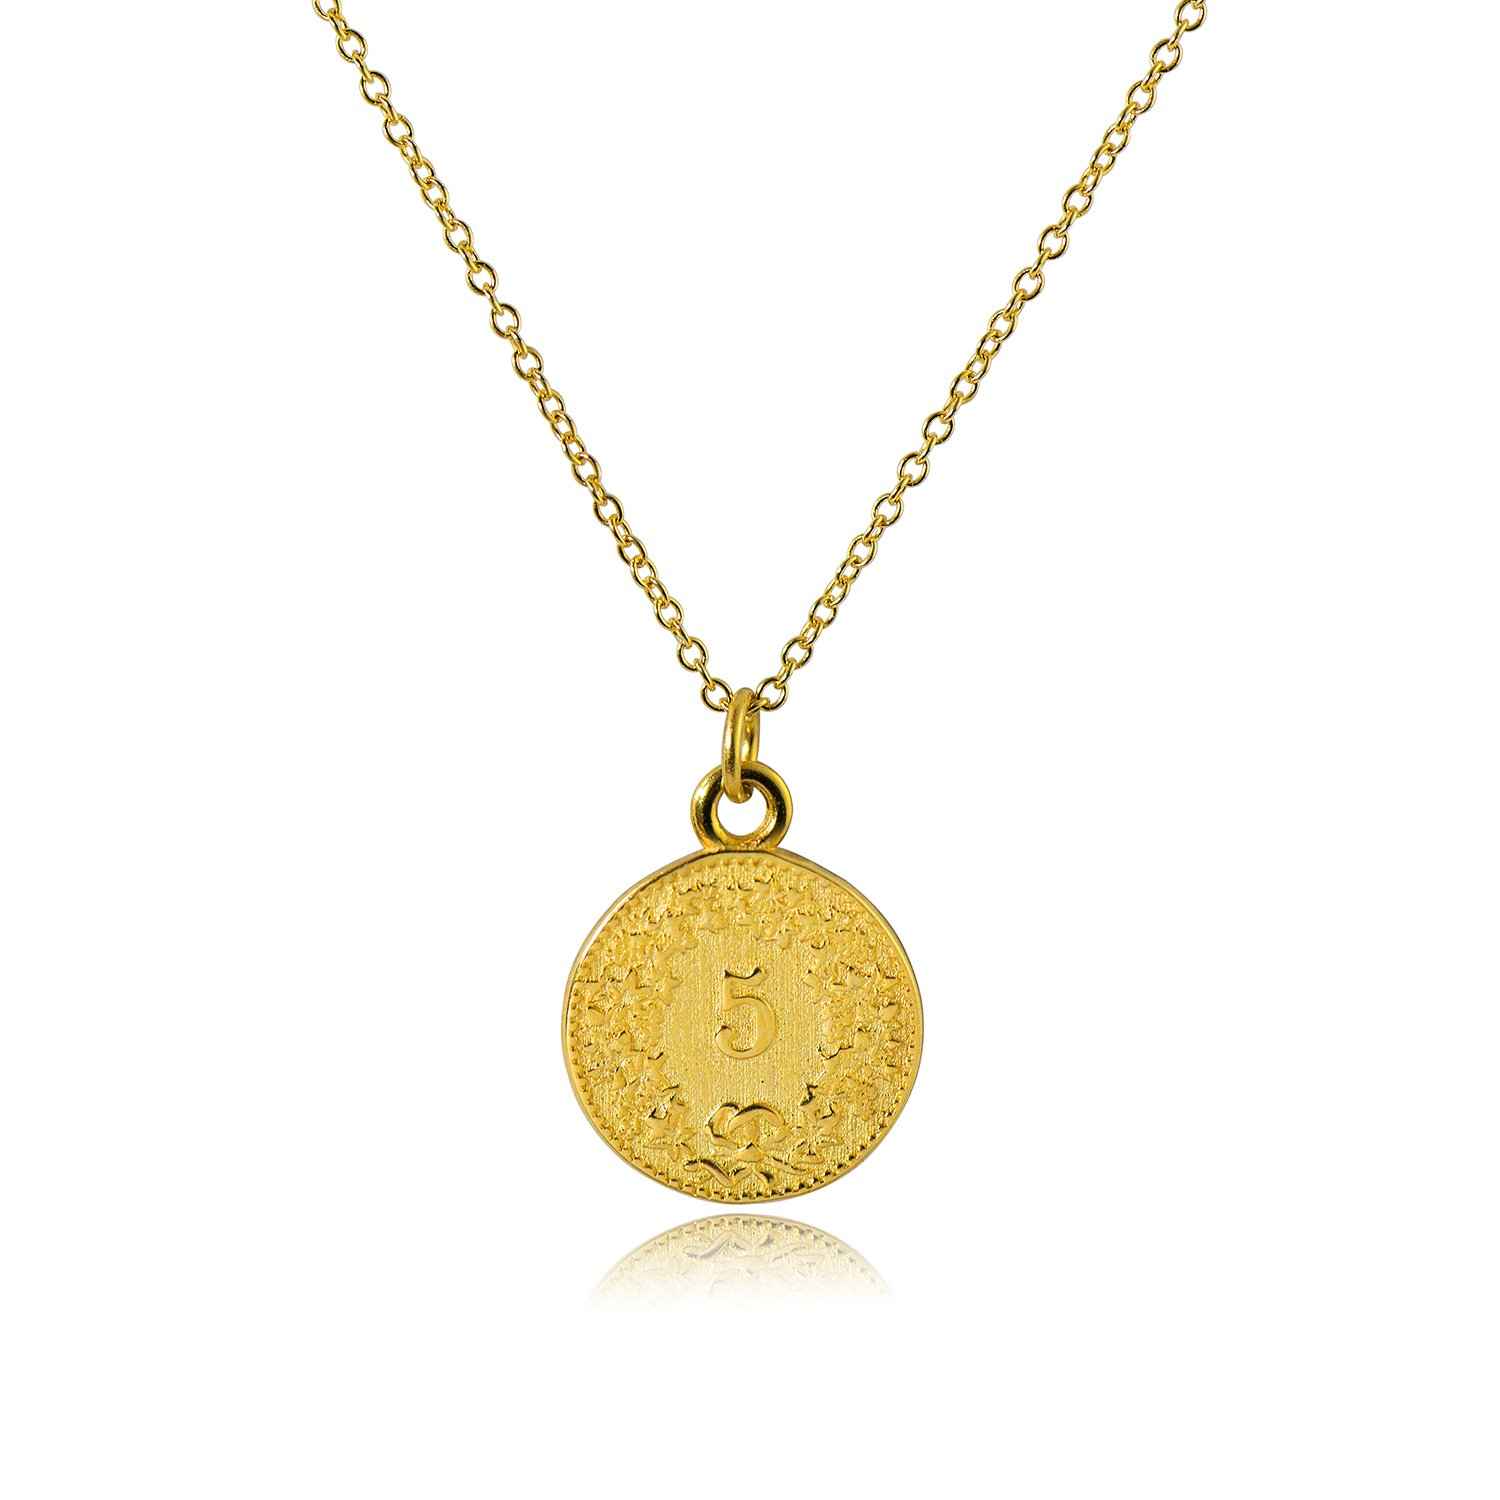 b315eed8a4147 CISHOP Treasure Vintage 18K Special Coin Necklace Sterling Silver Disc  Round Circle Pendant Necklace